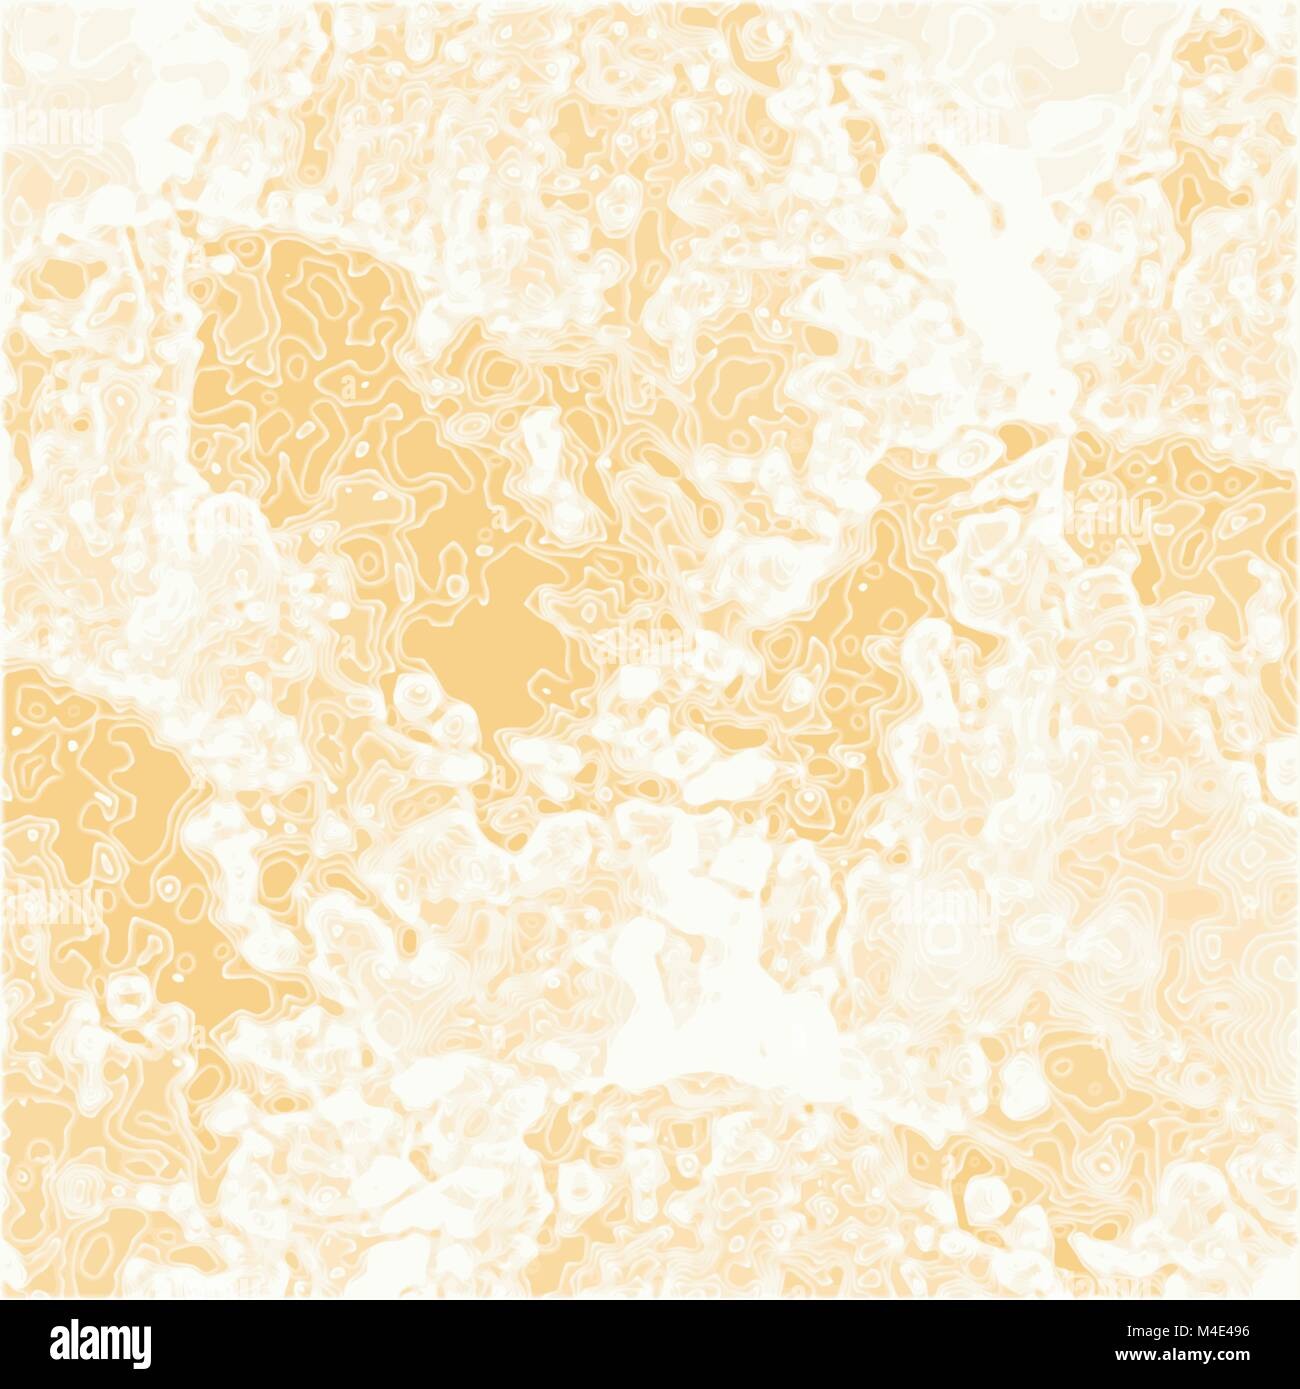 Good Wallpaper Marble Watercolor - golden-yellow-watercolor-marble-pattern-vector-illustration-M4E496  Trends_543897.jpg